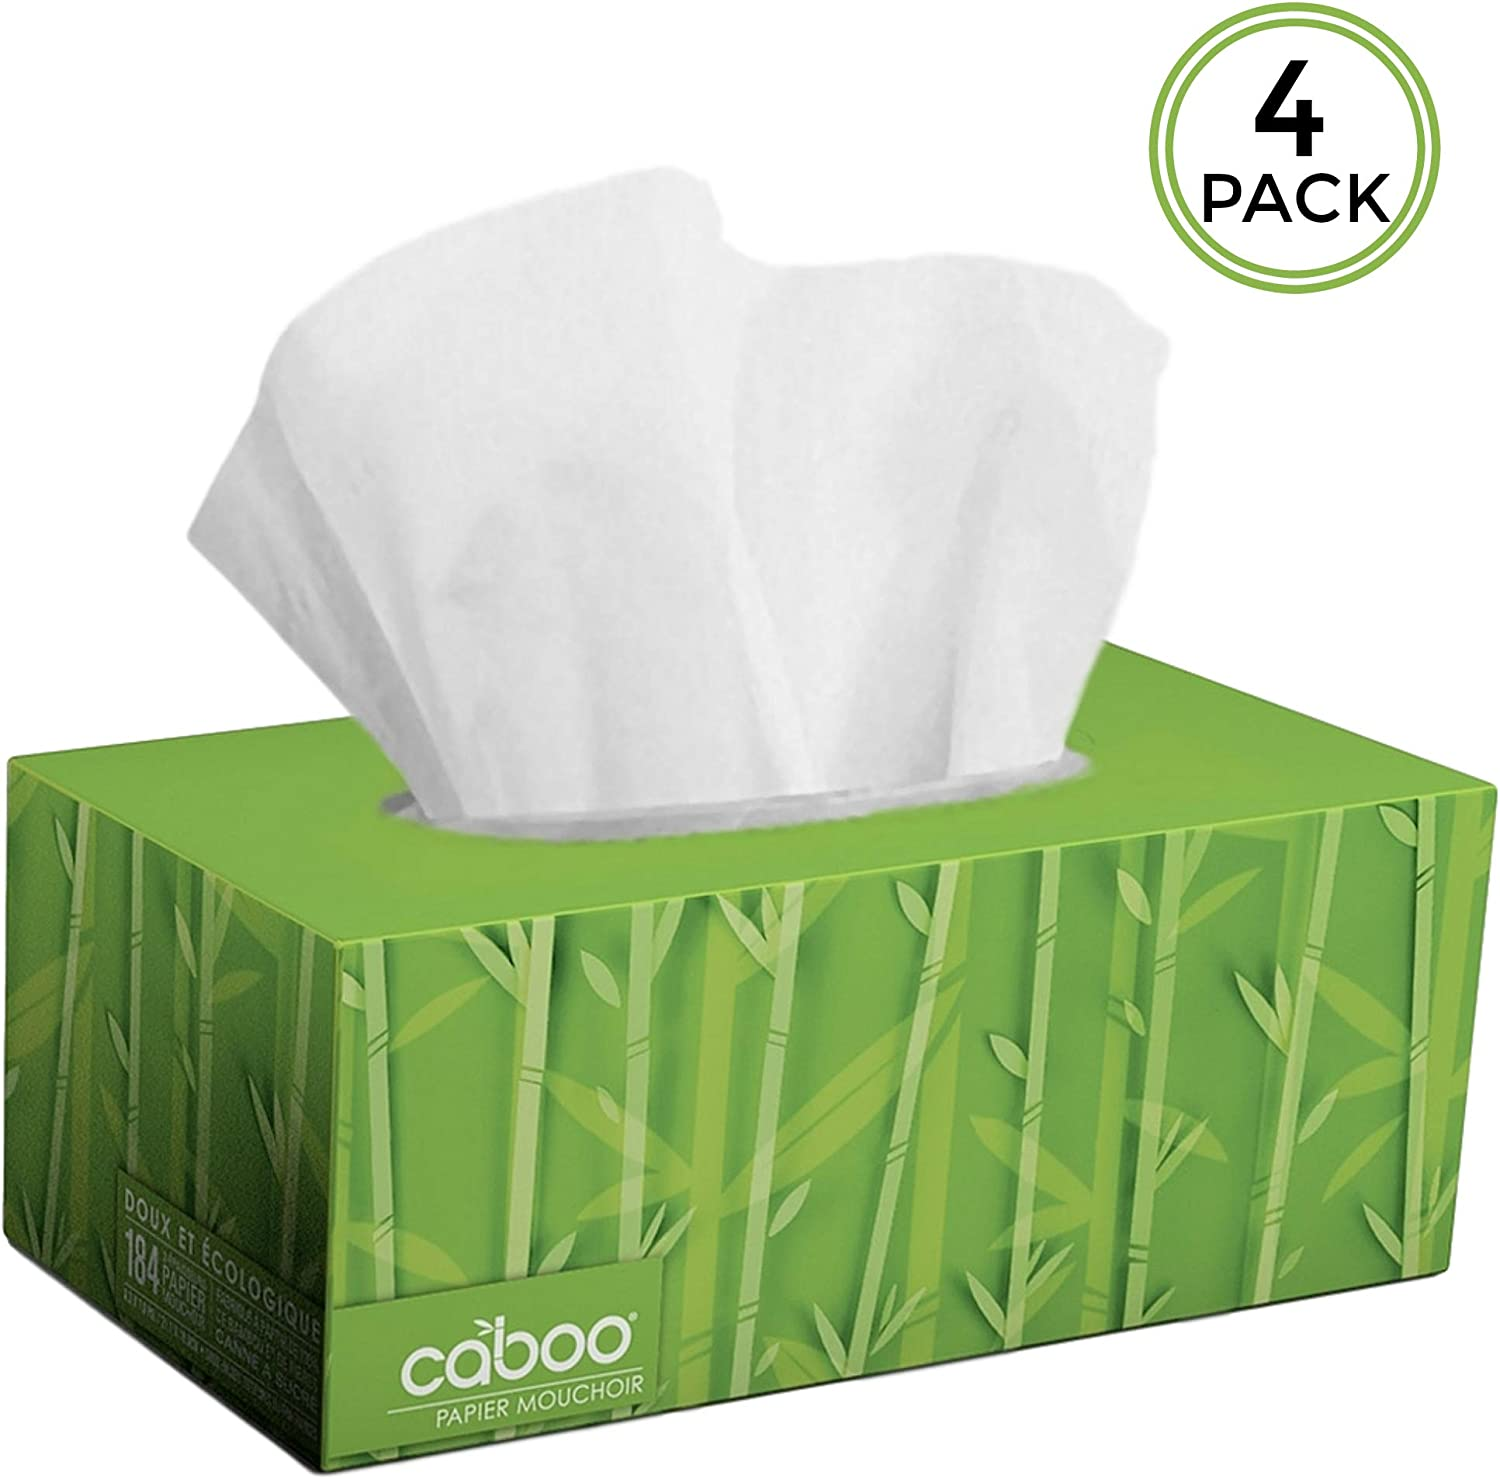 Caboo Tree Free Bamboo Facial Tissue Paper, Eco Friendly 2 Ply Tissue Flat Box - 184 Sheets Per Box, Total of 4 Boxes, 736 Total Tissues